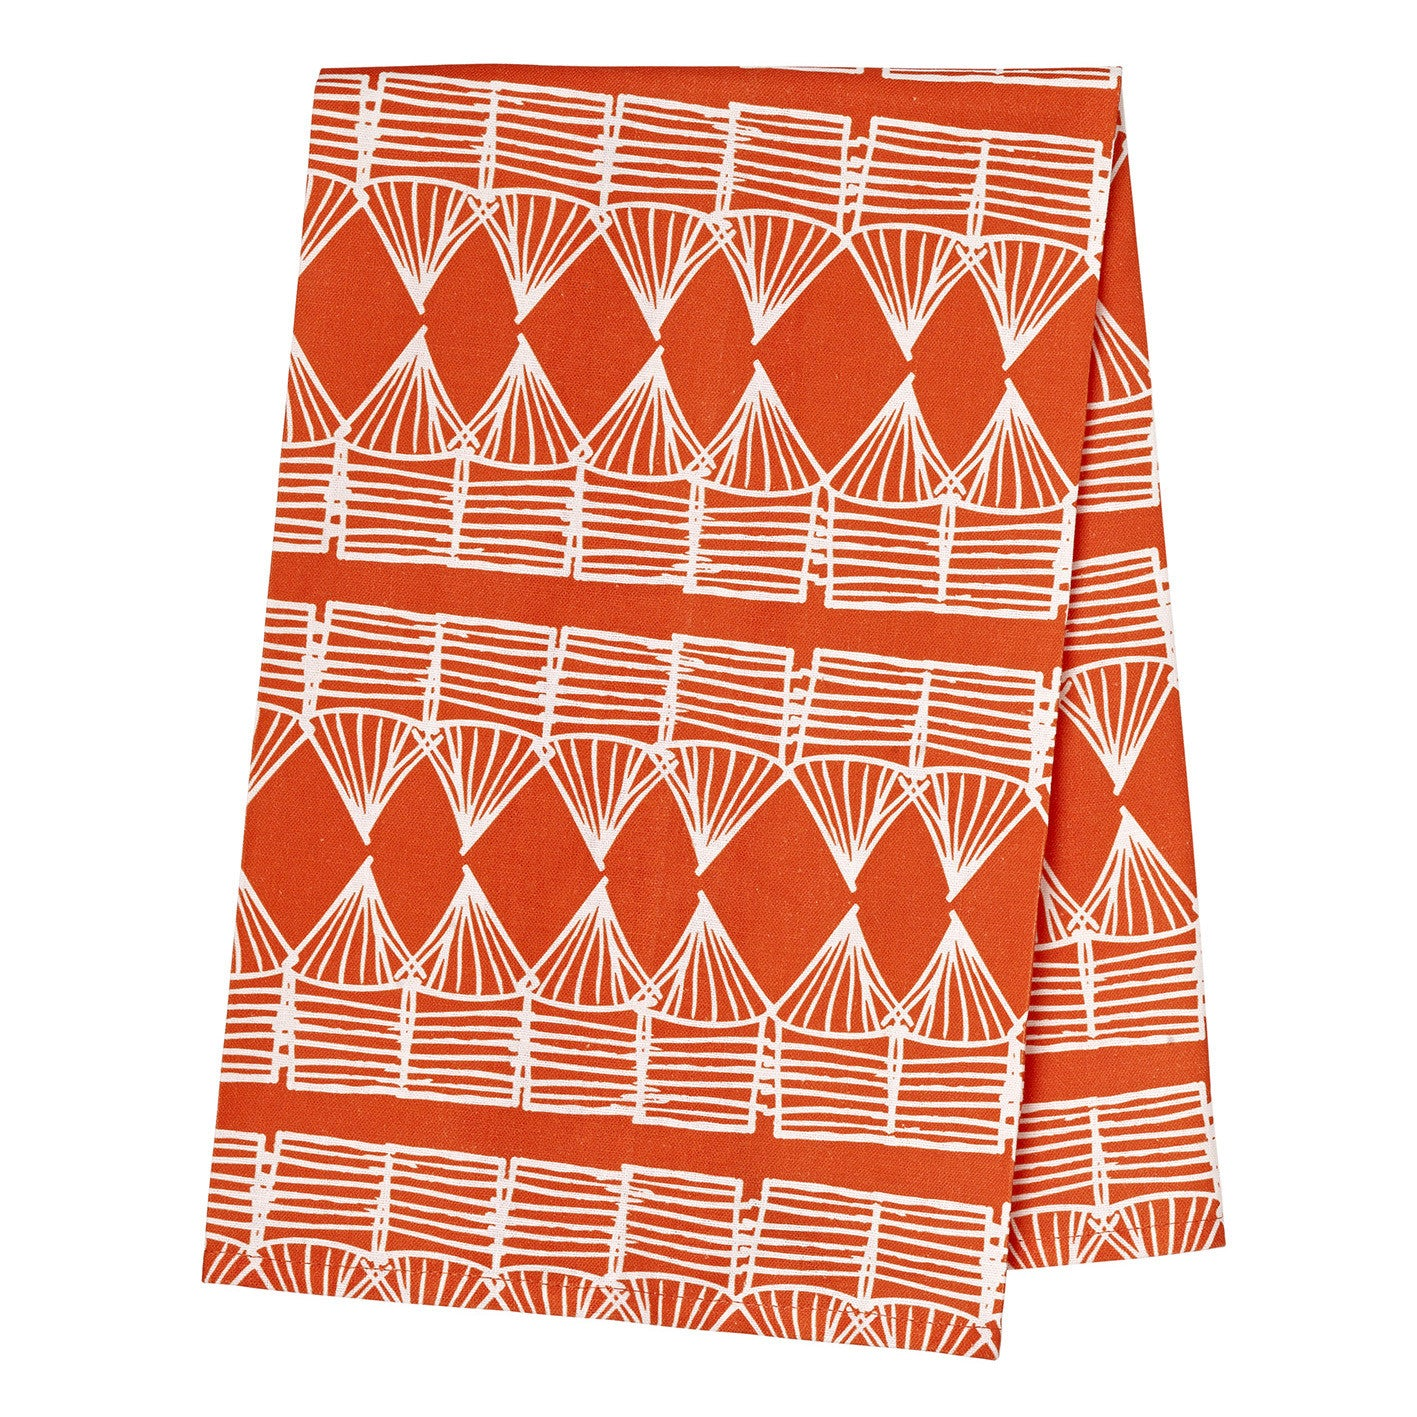 Huts Tea Towel - Pumpkin Orange